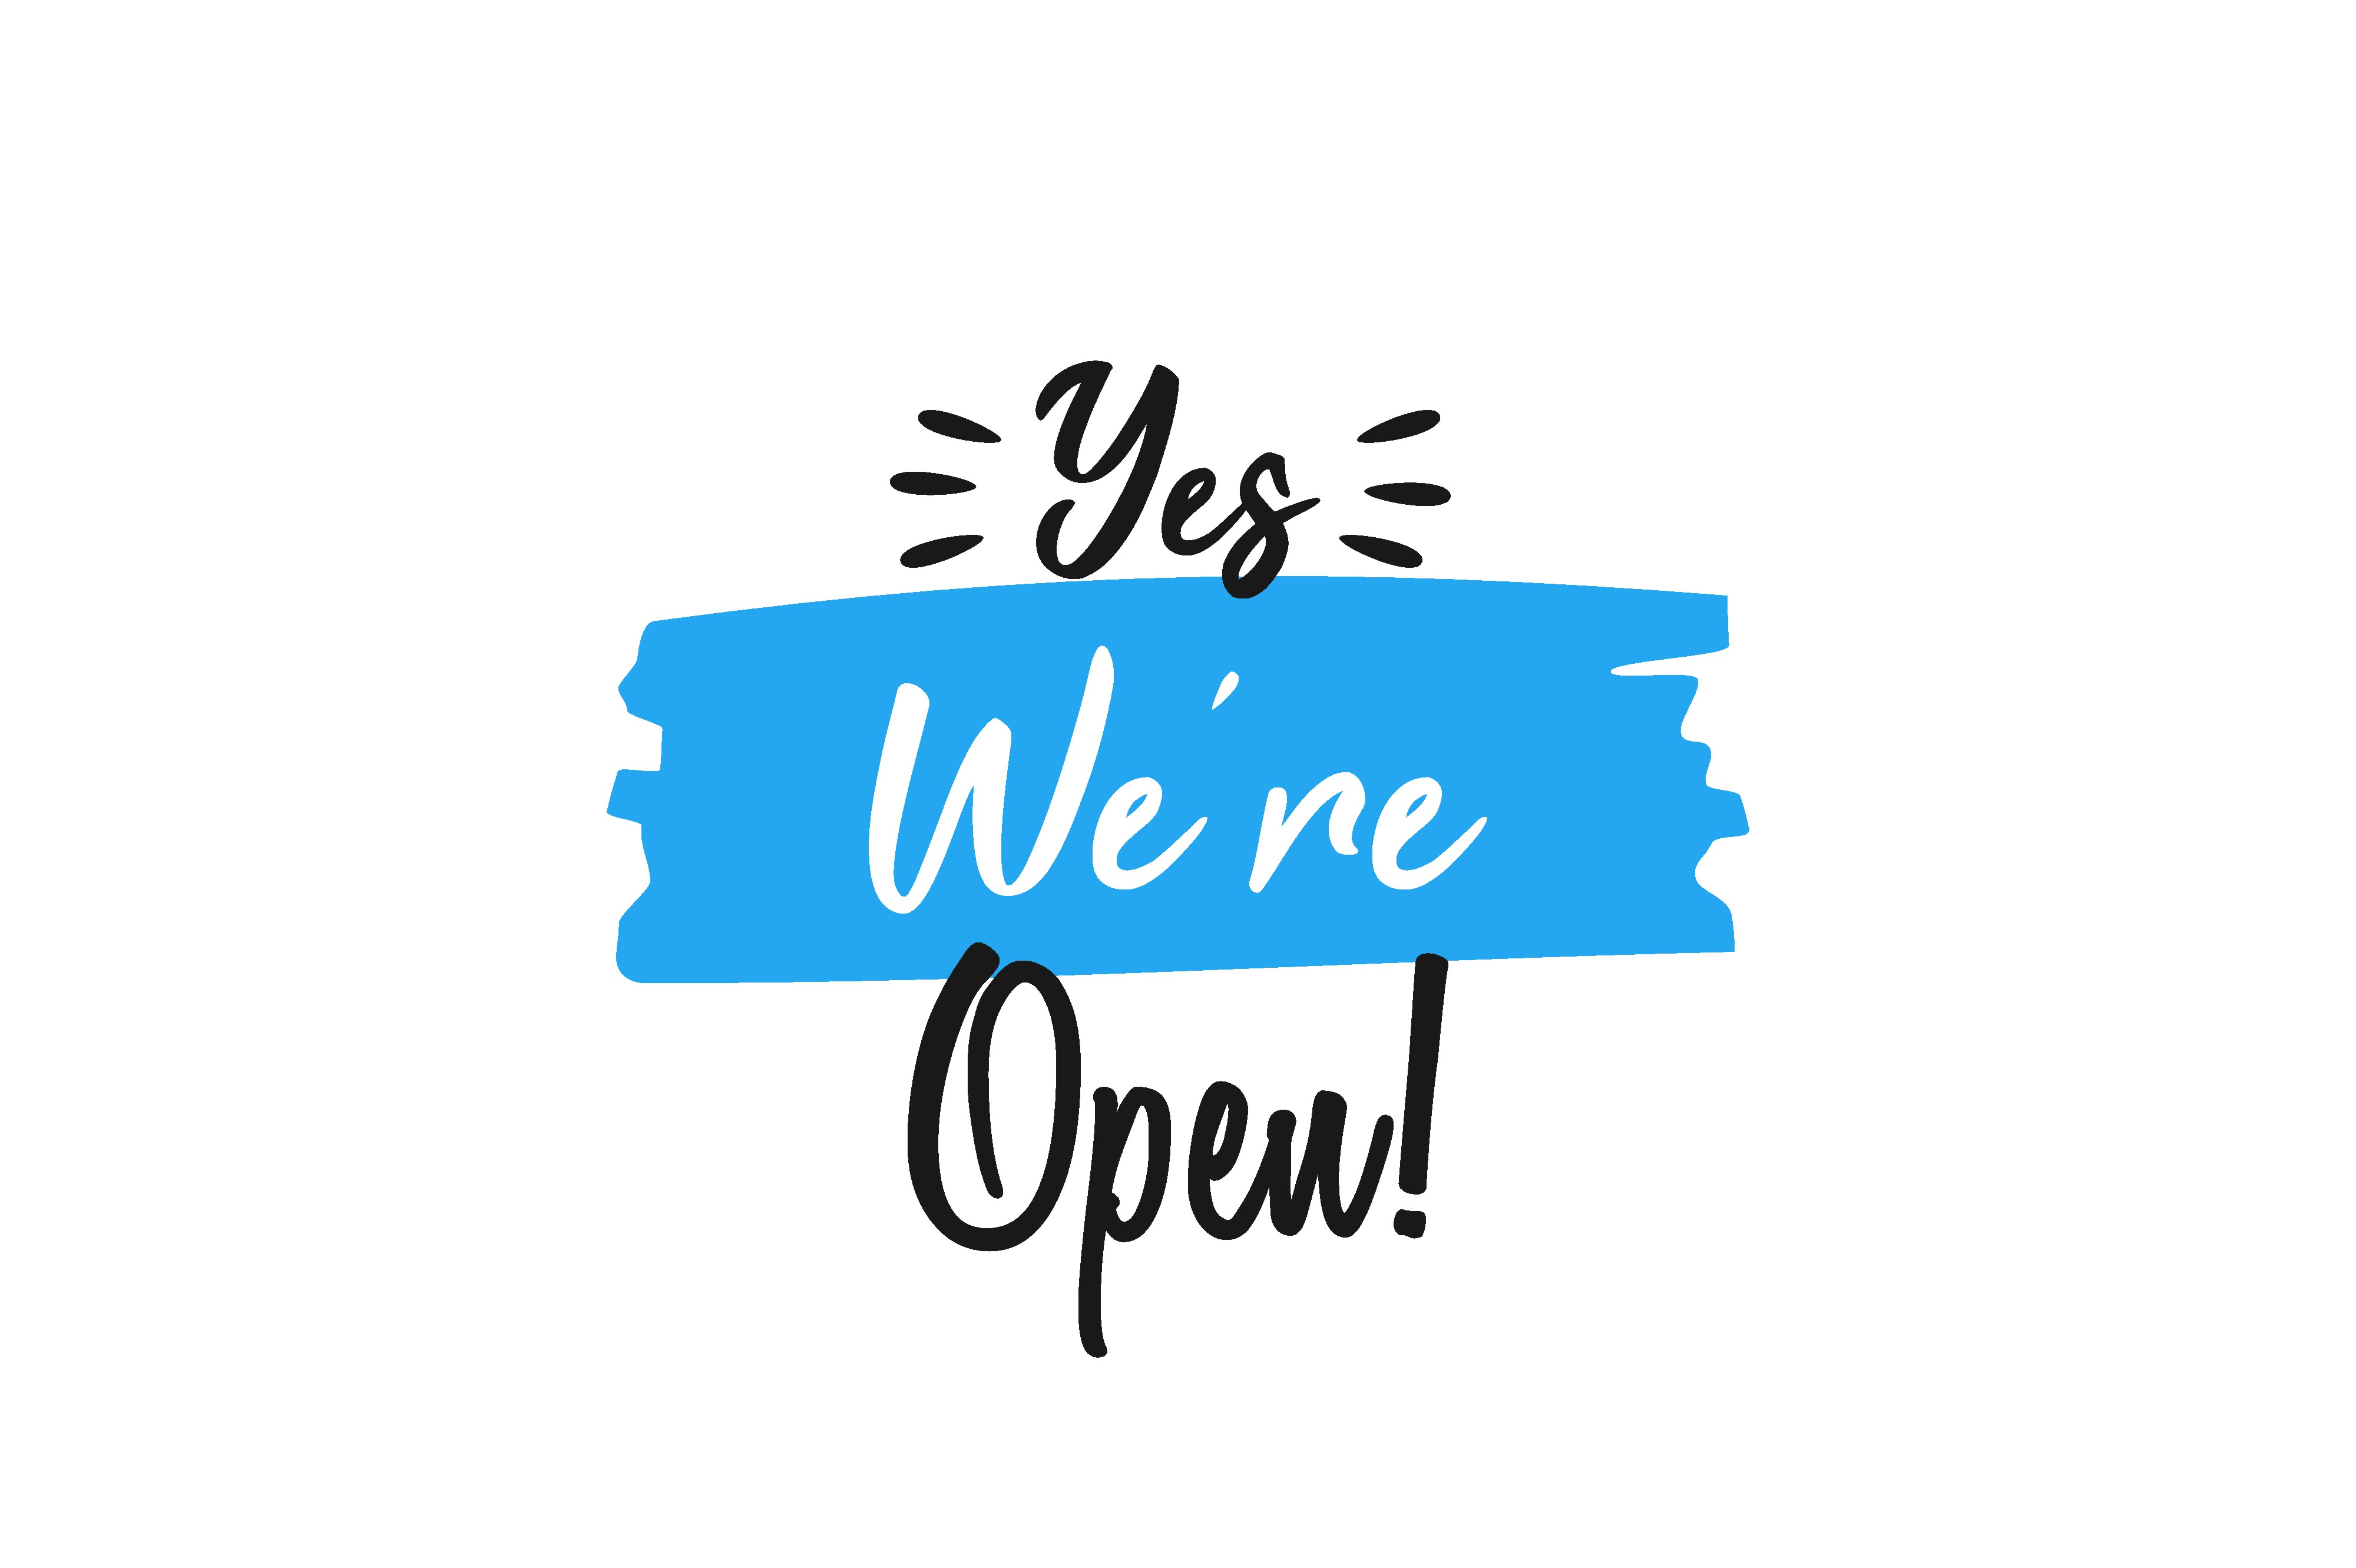 Yes were open Graphics 1 - Harrisburg Housing Authority Section 8 Application